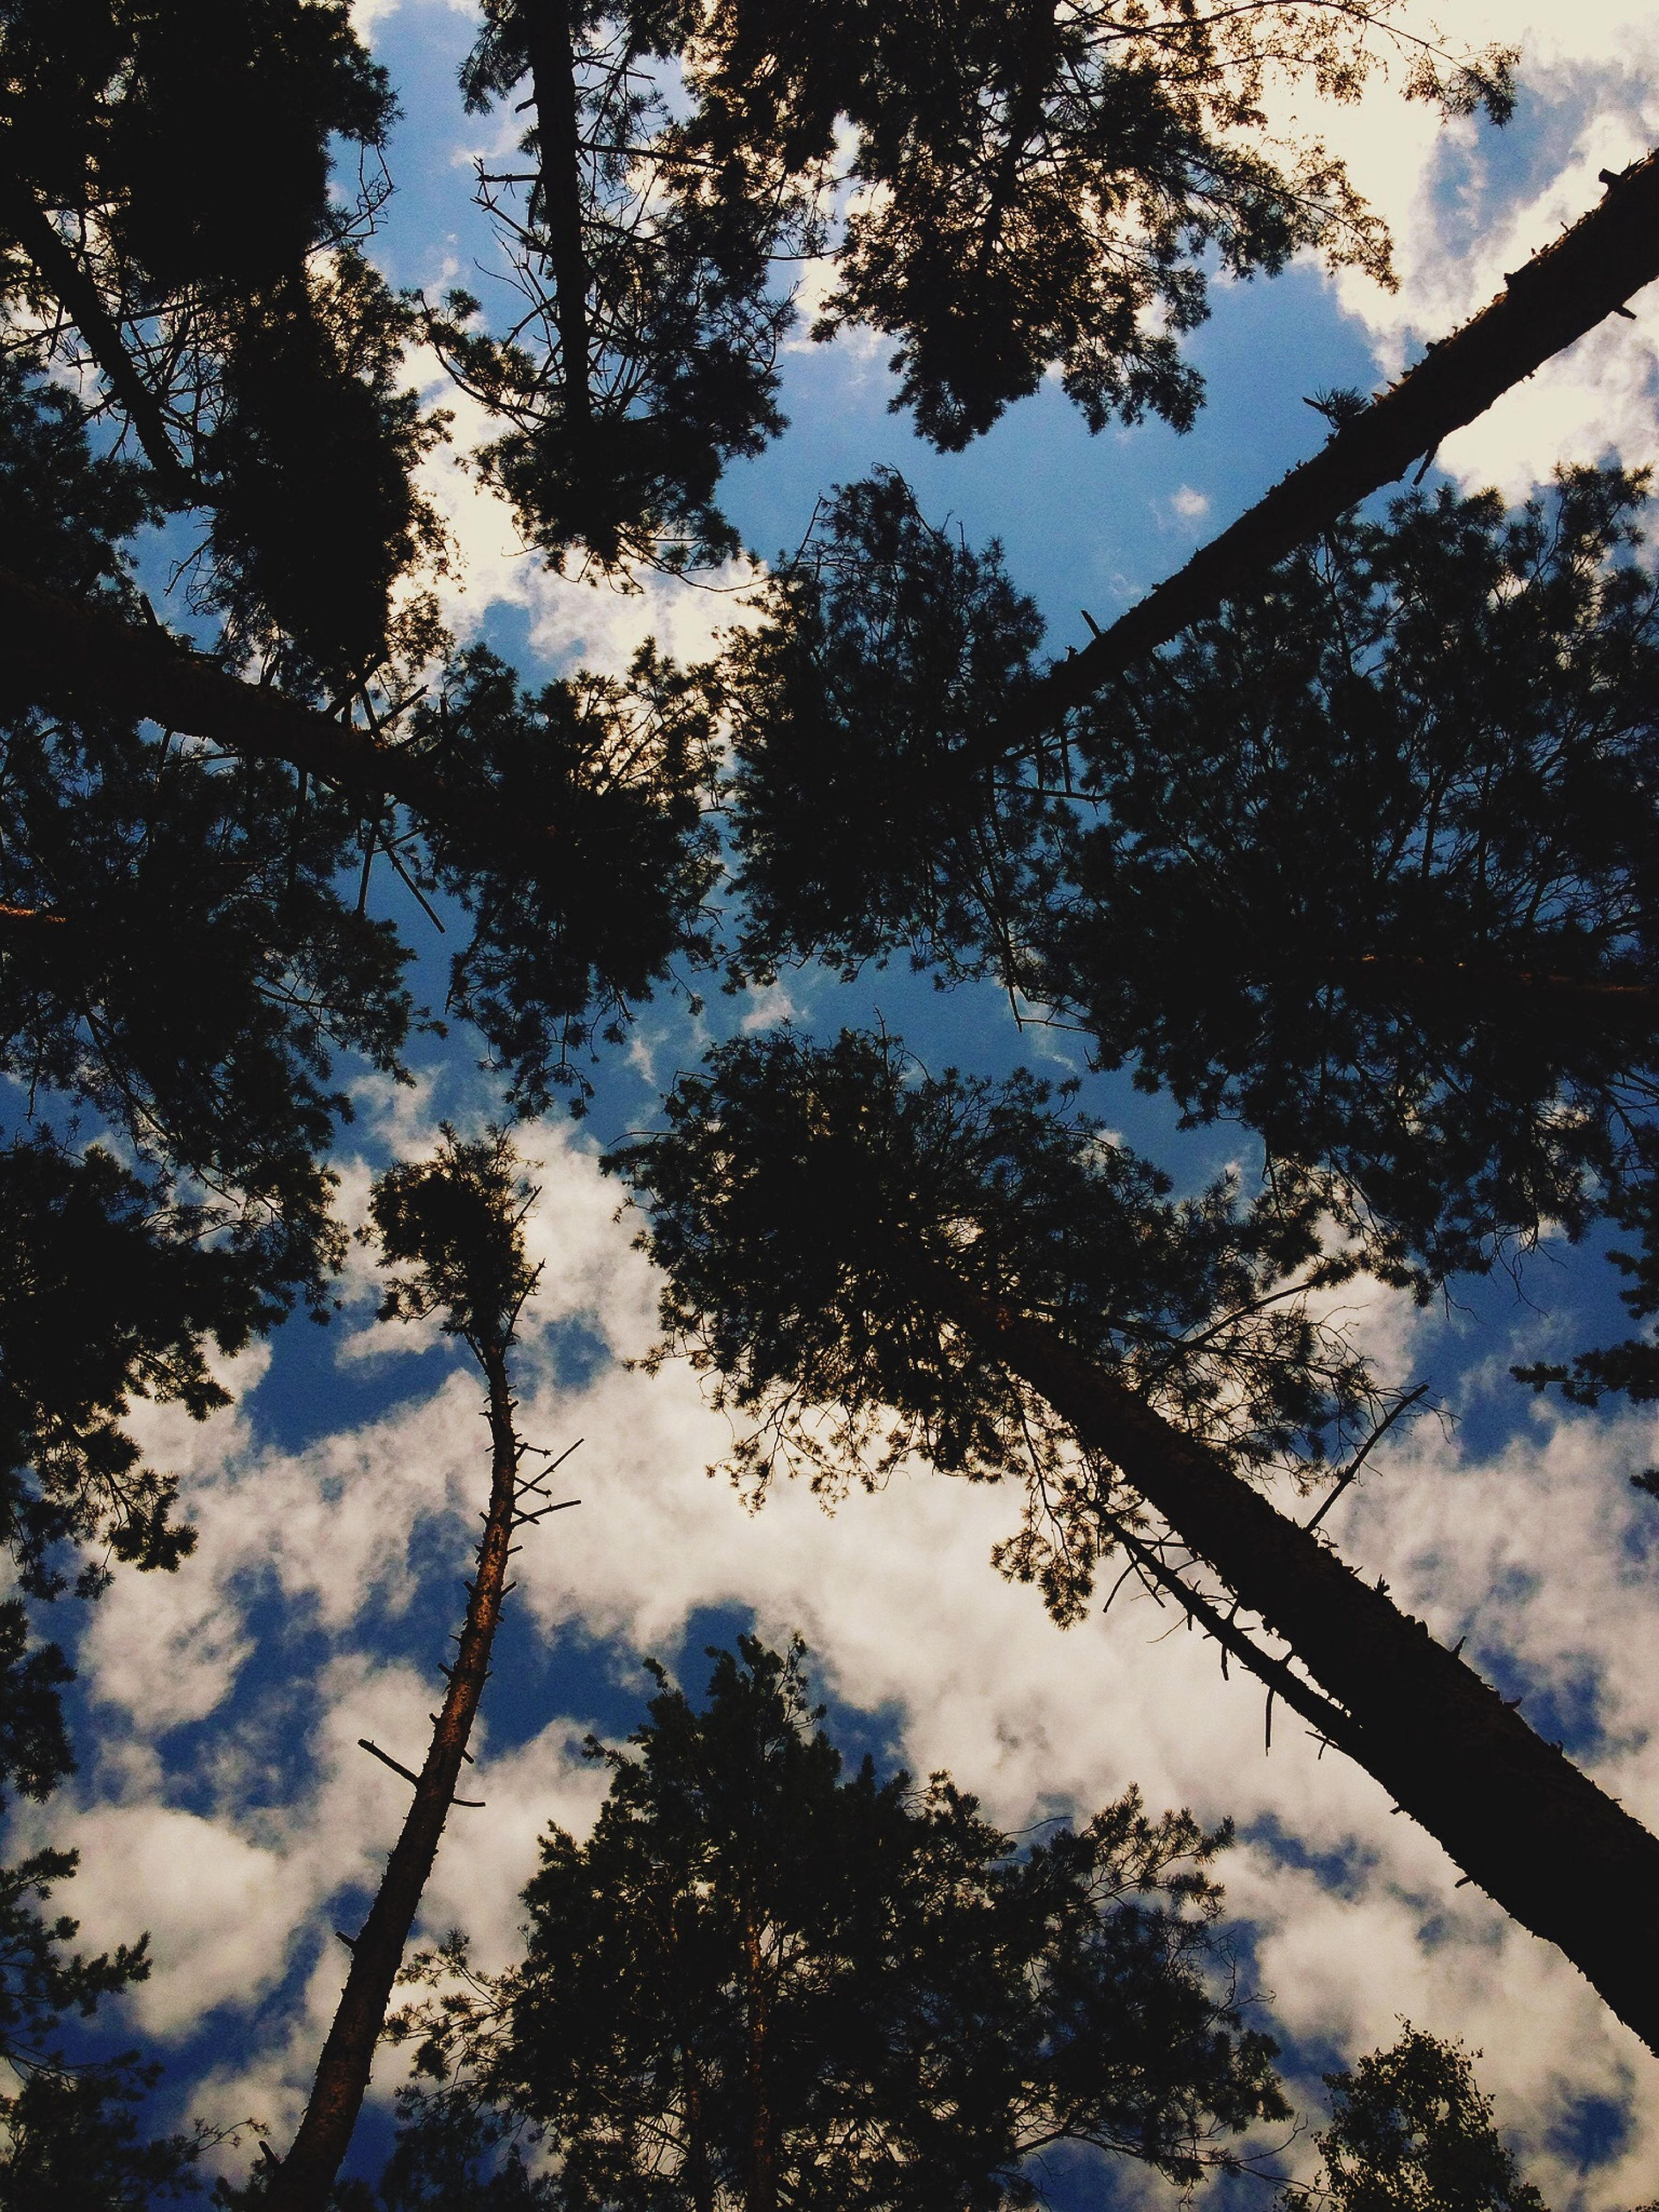 tree, low angle view, sky, cloud - sky, tranquility, nature, branch, beauty in nature, tranquil scene, cloud, scenics, cloudy, growth, silhouette, day, outdoors, no people, tree trunk, blue, reflection